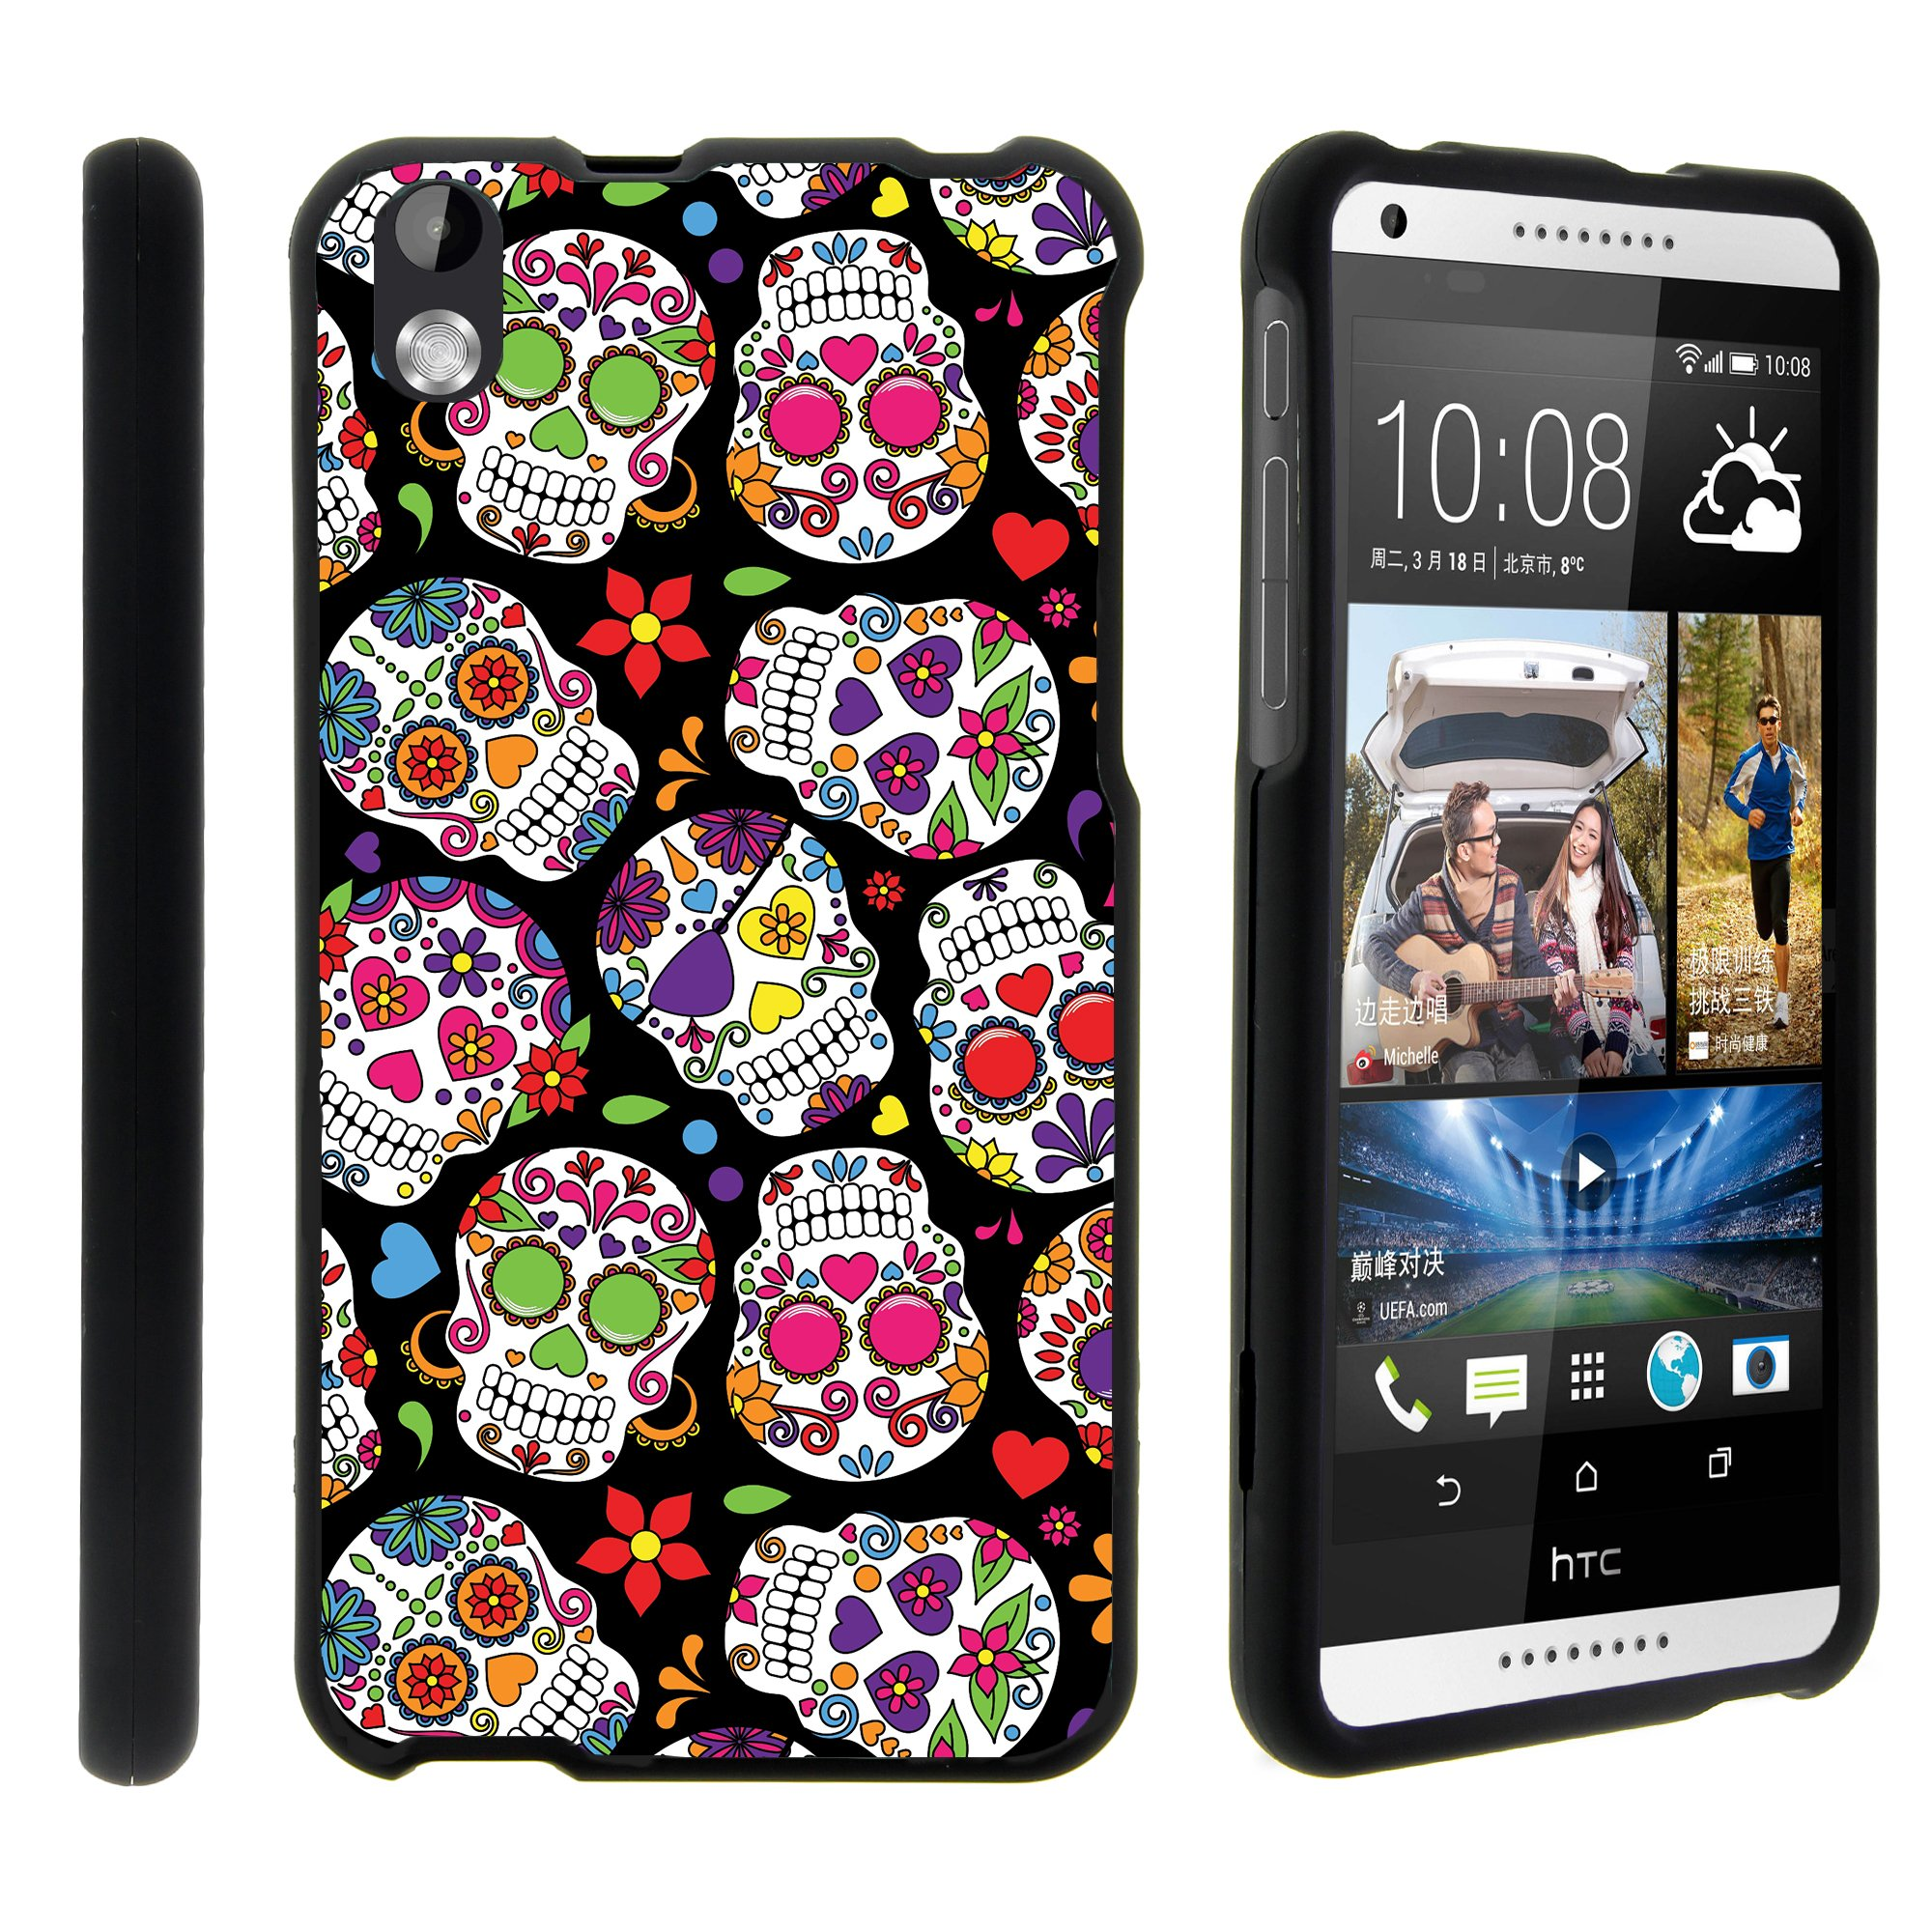 HTC Desire 816, [SNAP SHELL][Matte Black] 2 Piece Snap On Rubberized Hard Plastic Cell Phone Cover with Cool Designs - Sugar Skull Design